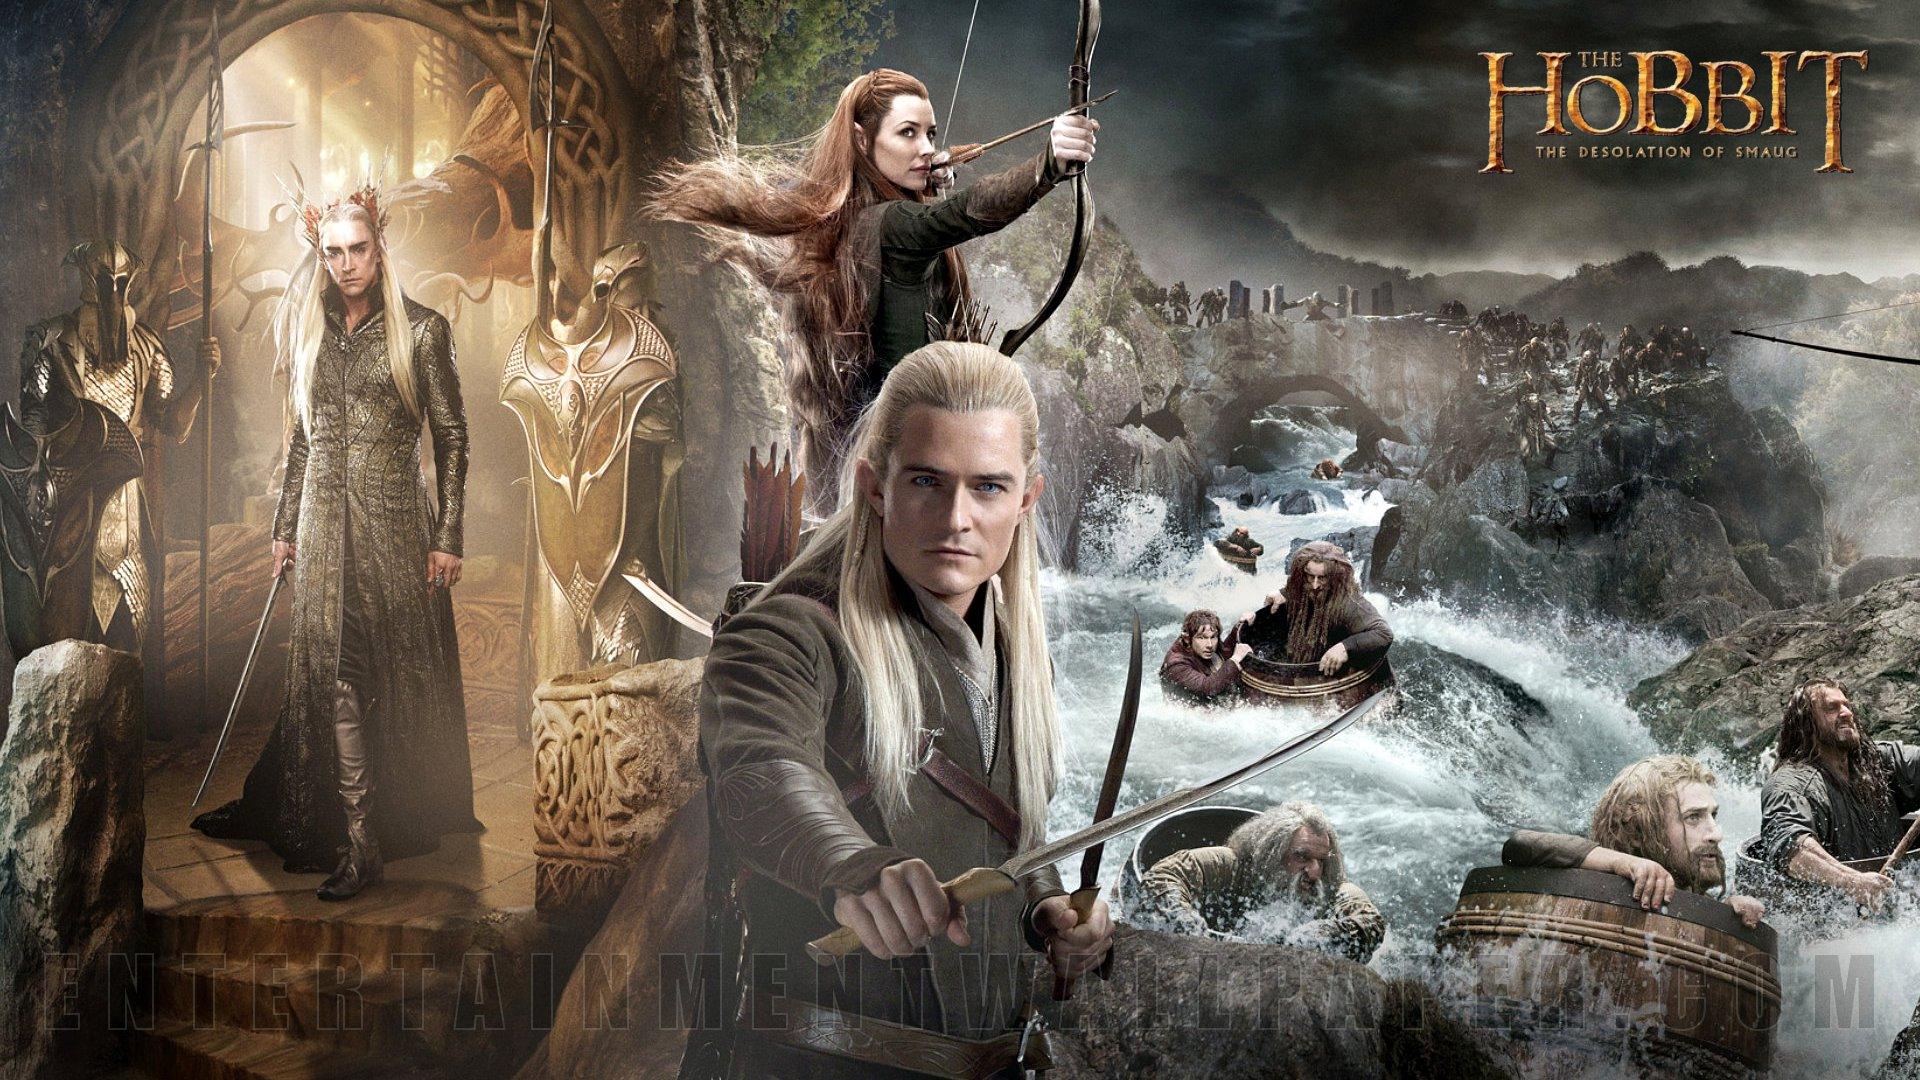 The Hobbit The Desolation Of Smaug Wallpaper 1920x1080 HD 1920x1080